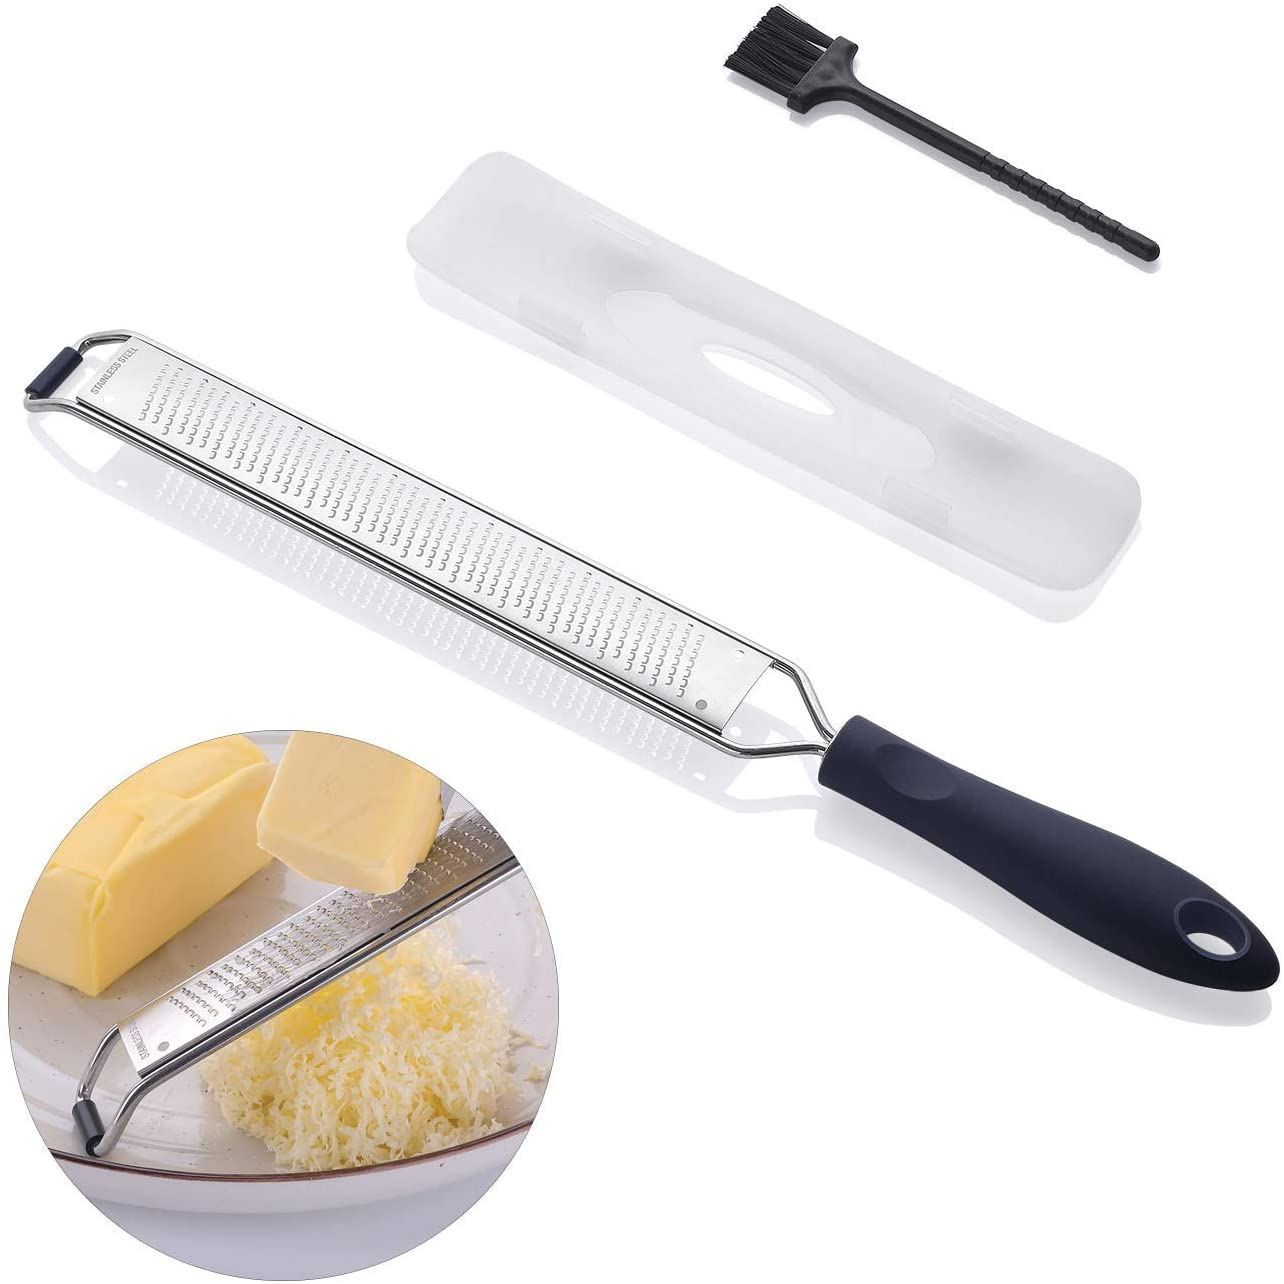 Cheese Grater Hand-held, Lemon Zester, Kitchen Zester Grater for Parmesan, Chocolate, Ginger, Garlic, Coconut, Nutmeg, Razor-Sharp Stainless Steel Zester Grater with Protective Cover, Dishwasher Safe